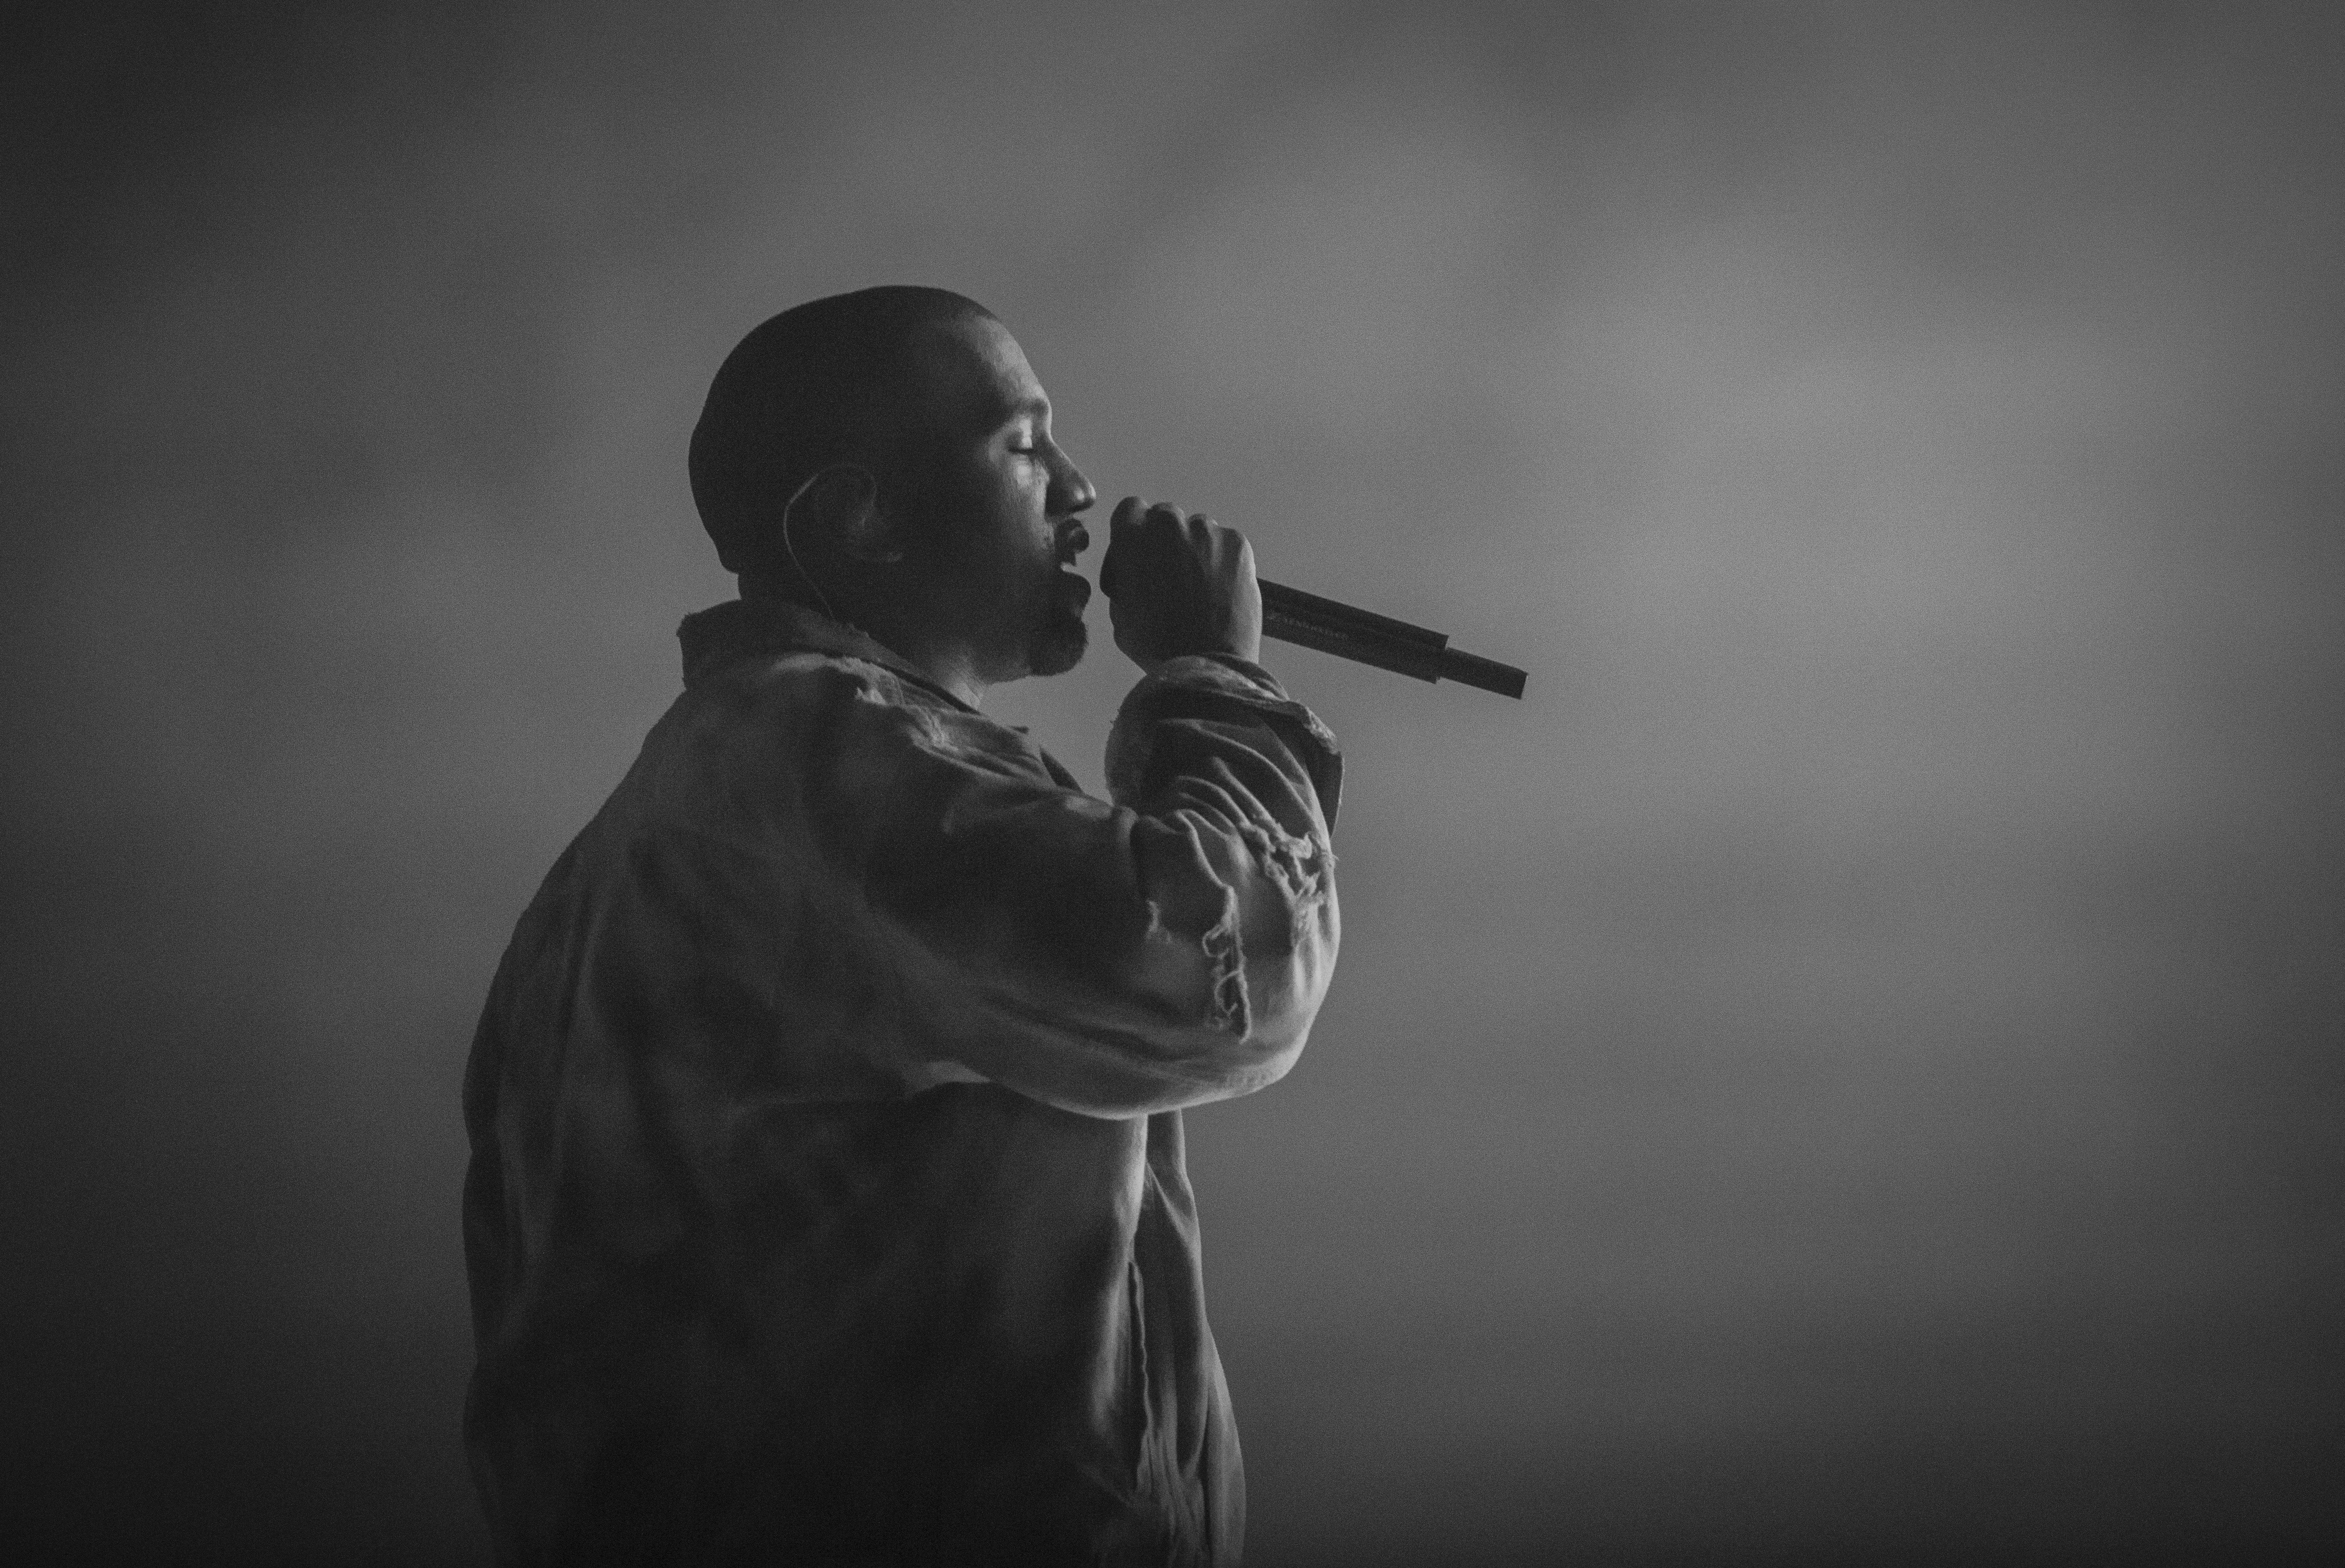 Kanye West performing live at the 2014 Outside Lands Music Festival in Golden Gate Park on Aug. 8, 2014.